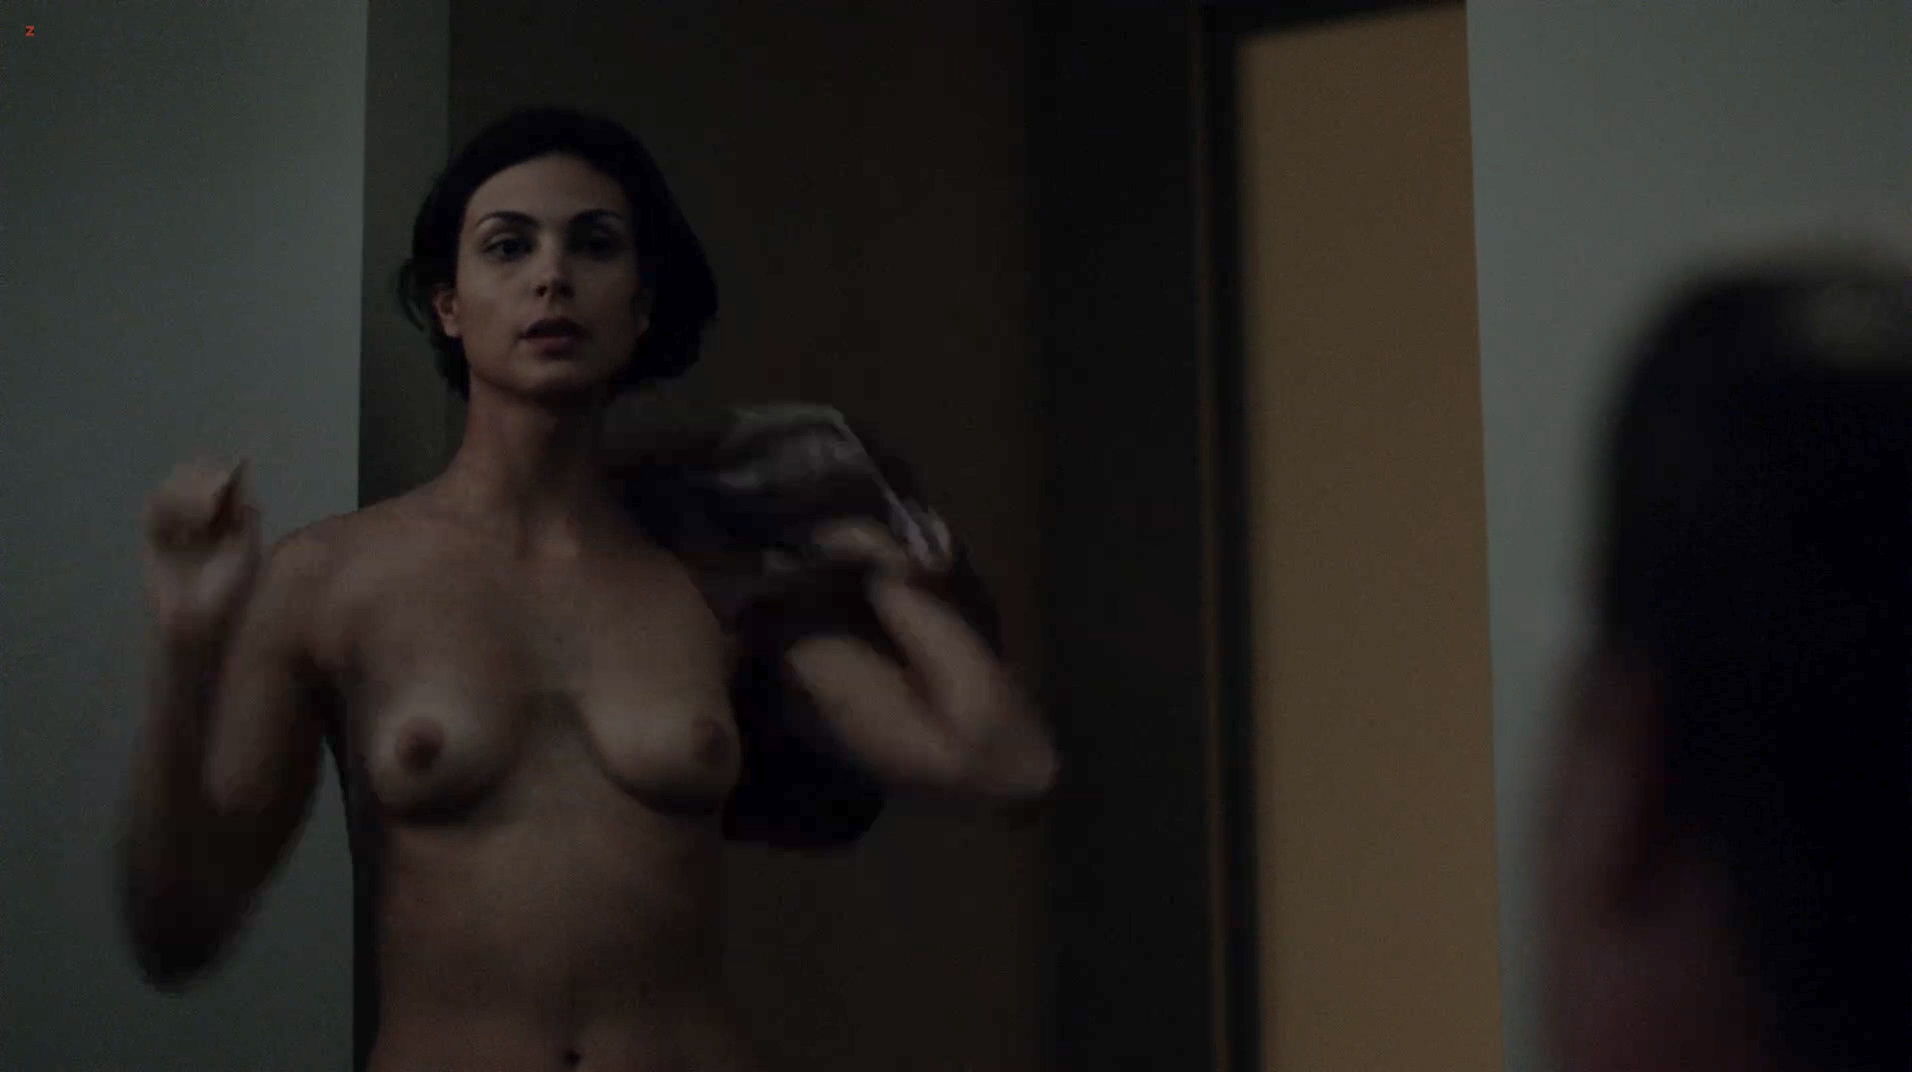 morena baccarin topless